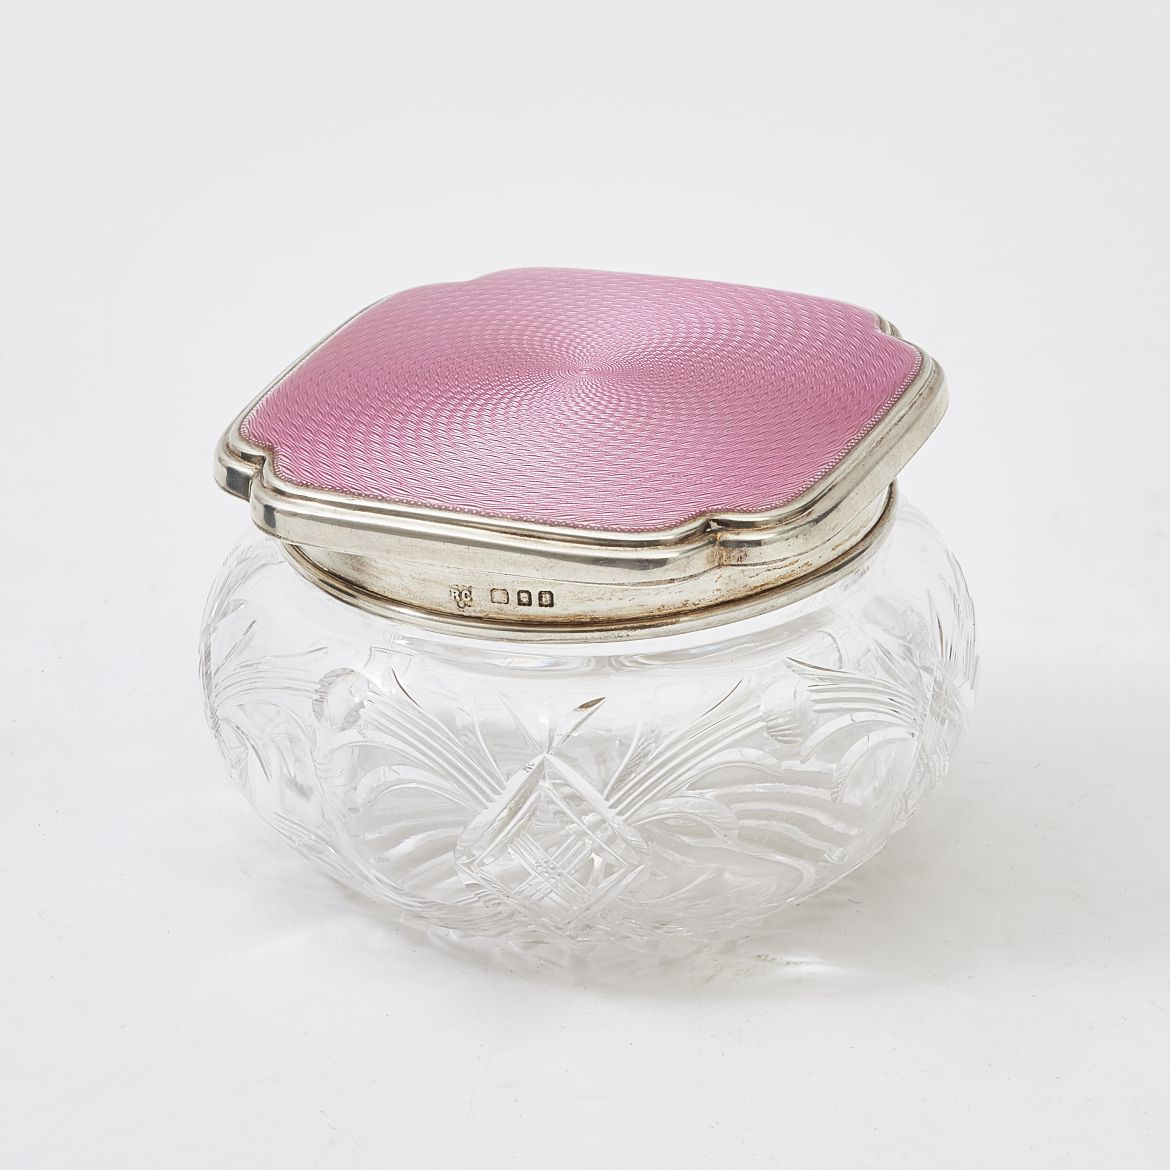 Cut Crystal & Enamel Powder Pot